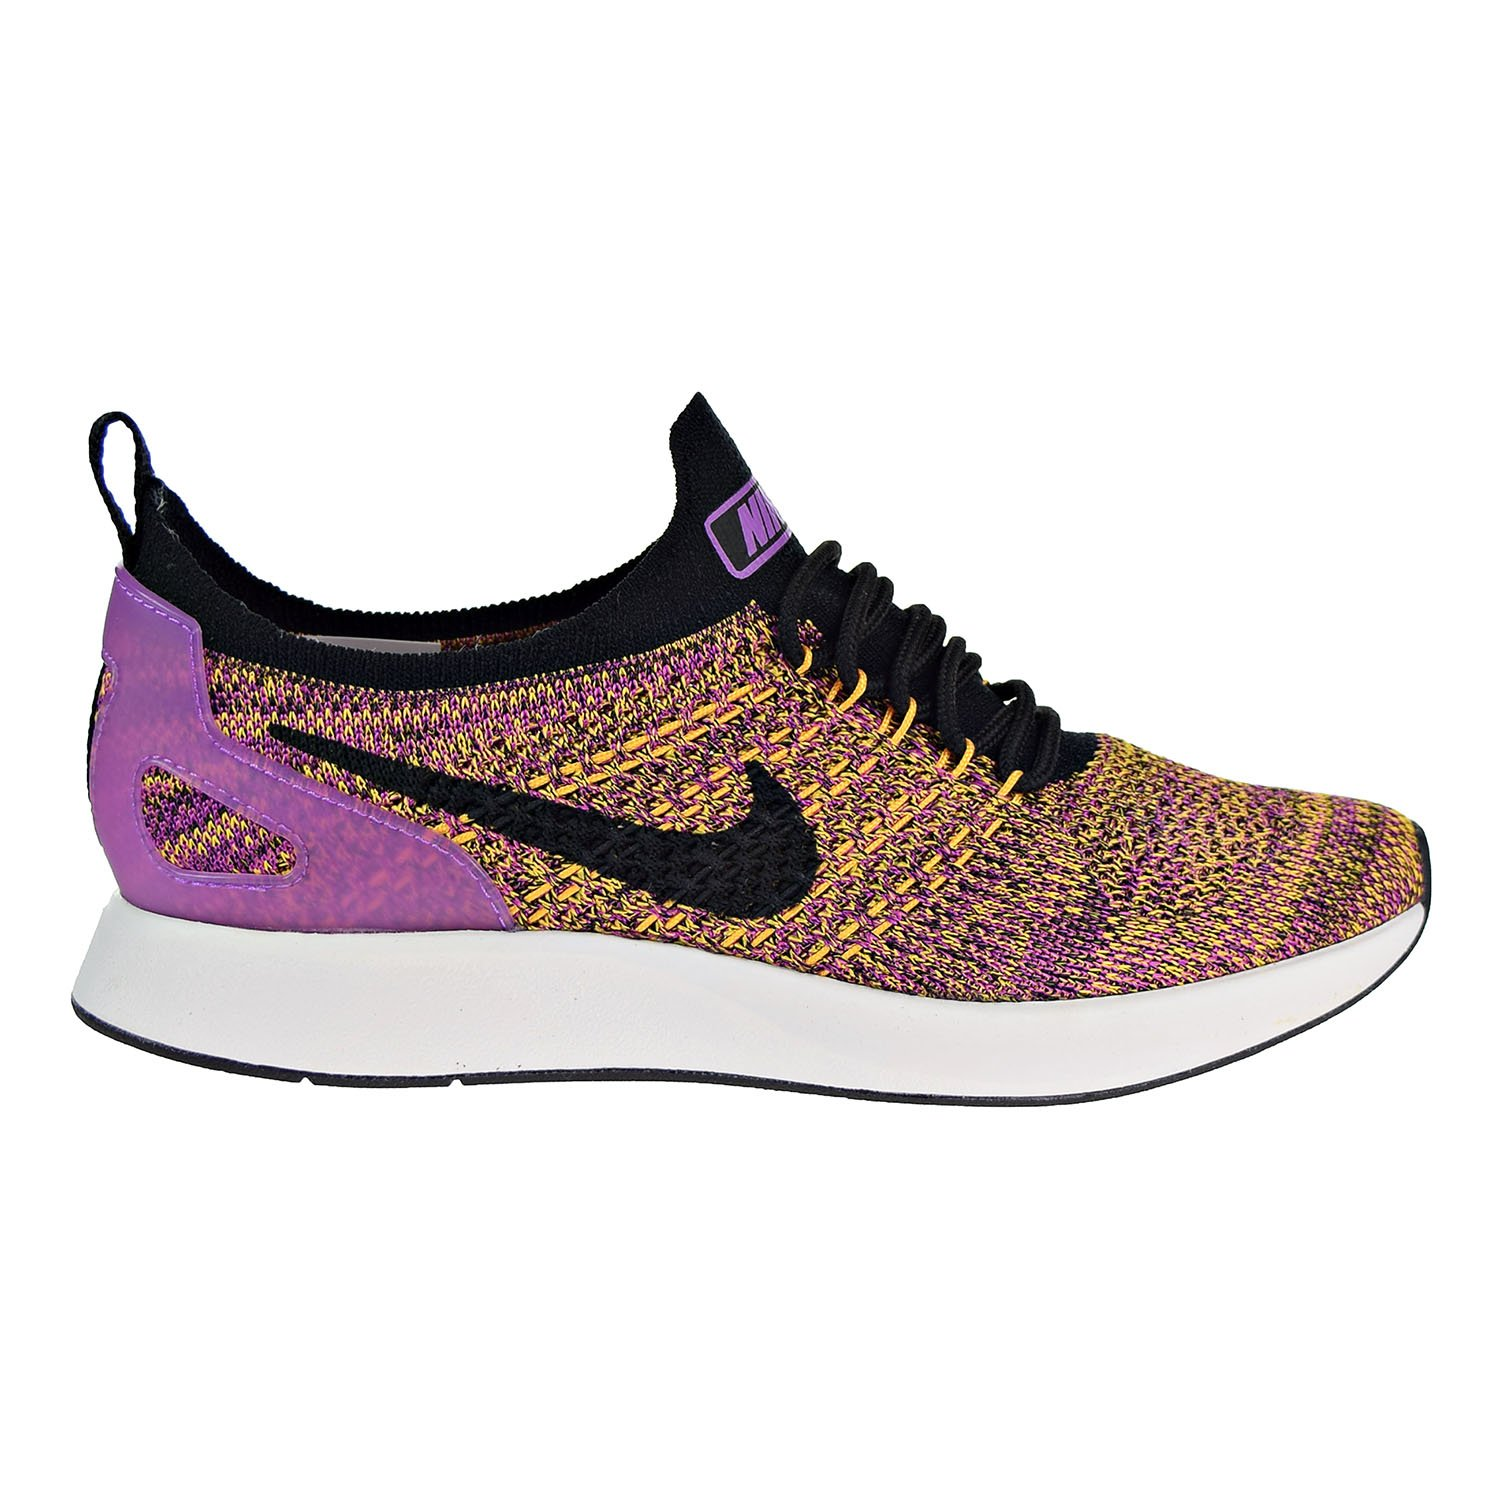 c71665f3a84be Nike Women  s Air Zoom Mariah Flyknit Racer Trainers